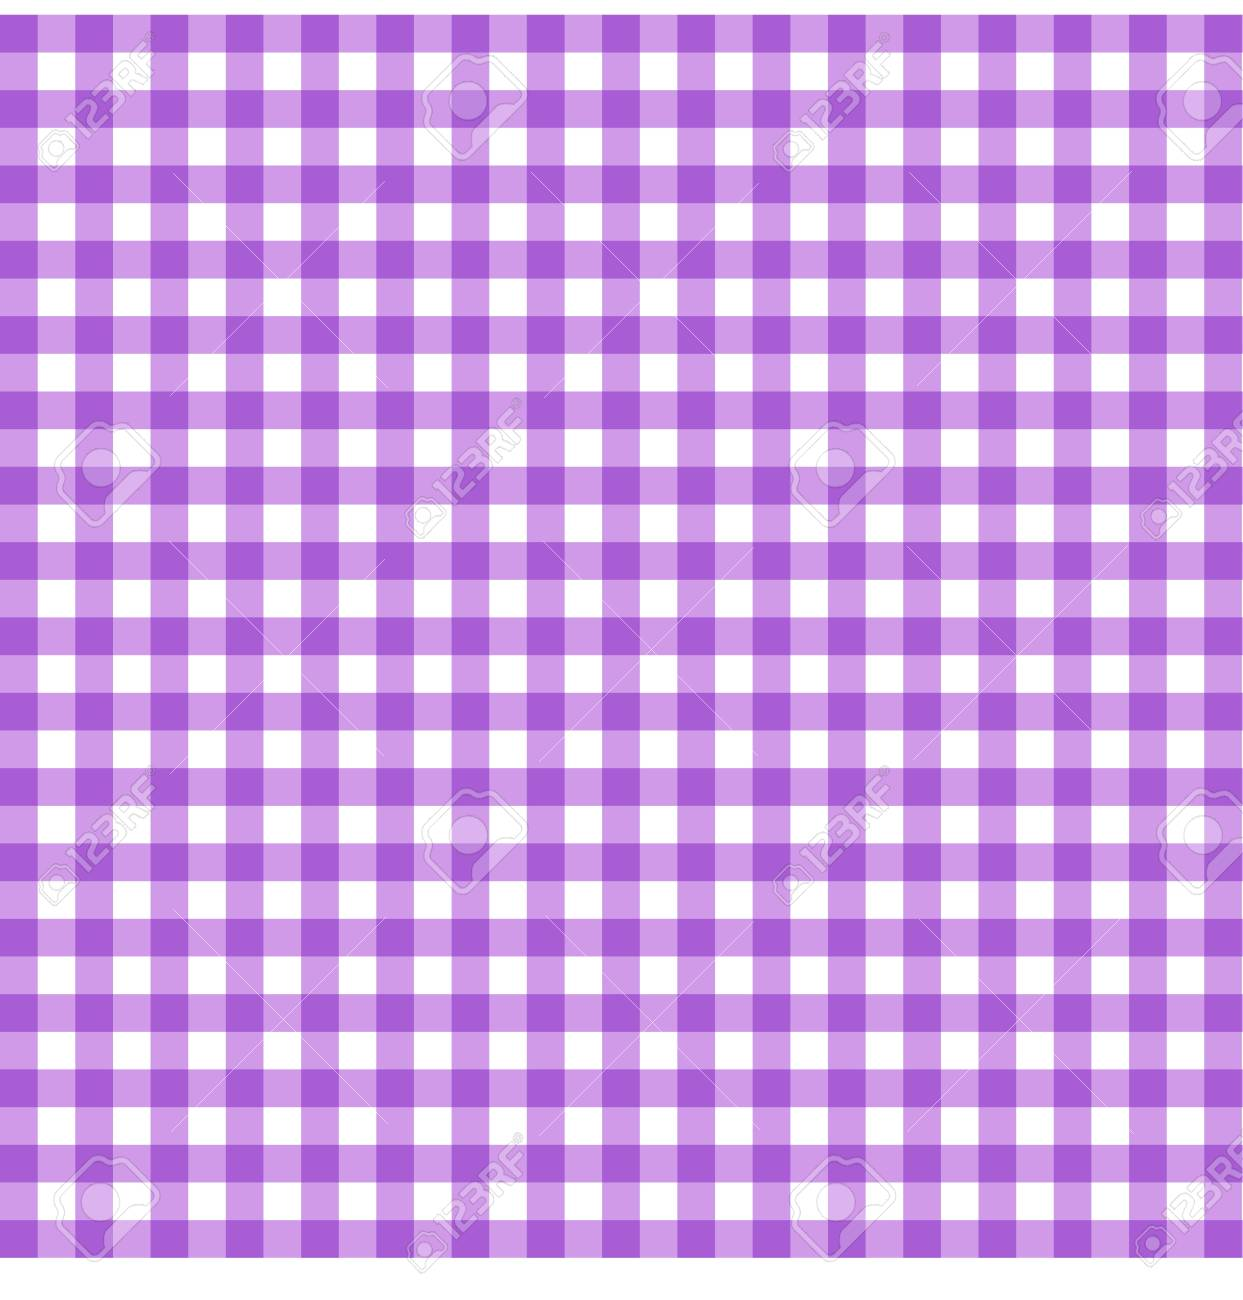 Tartan Plaid Seamless Pattern. Kitchen Checkered Purple Tablecloth Napkin  Fabric Background. Stock Vector